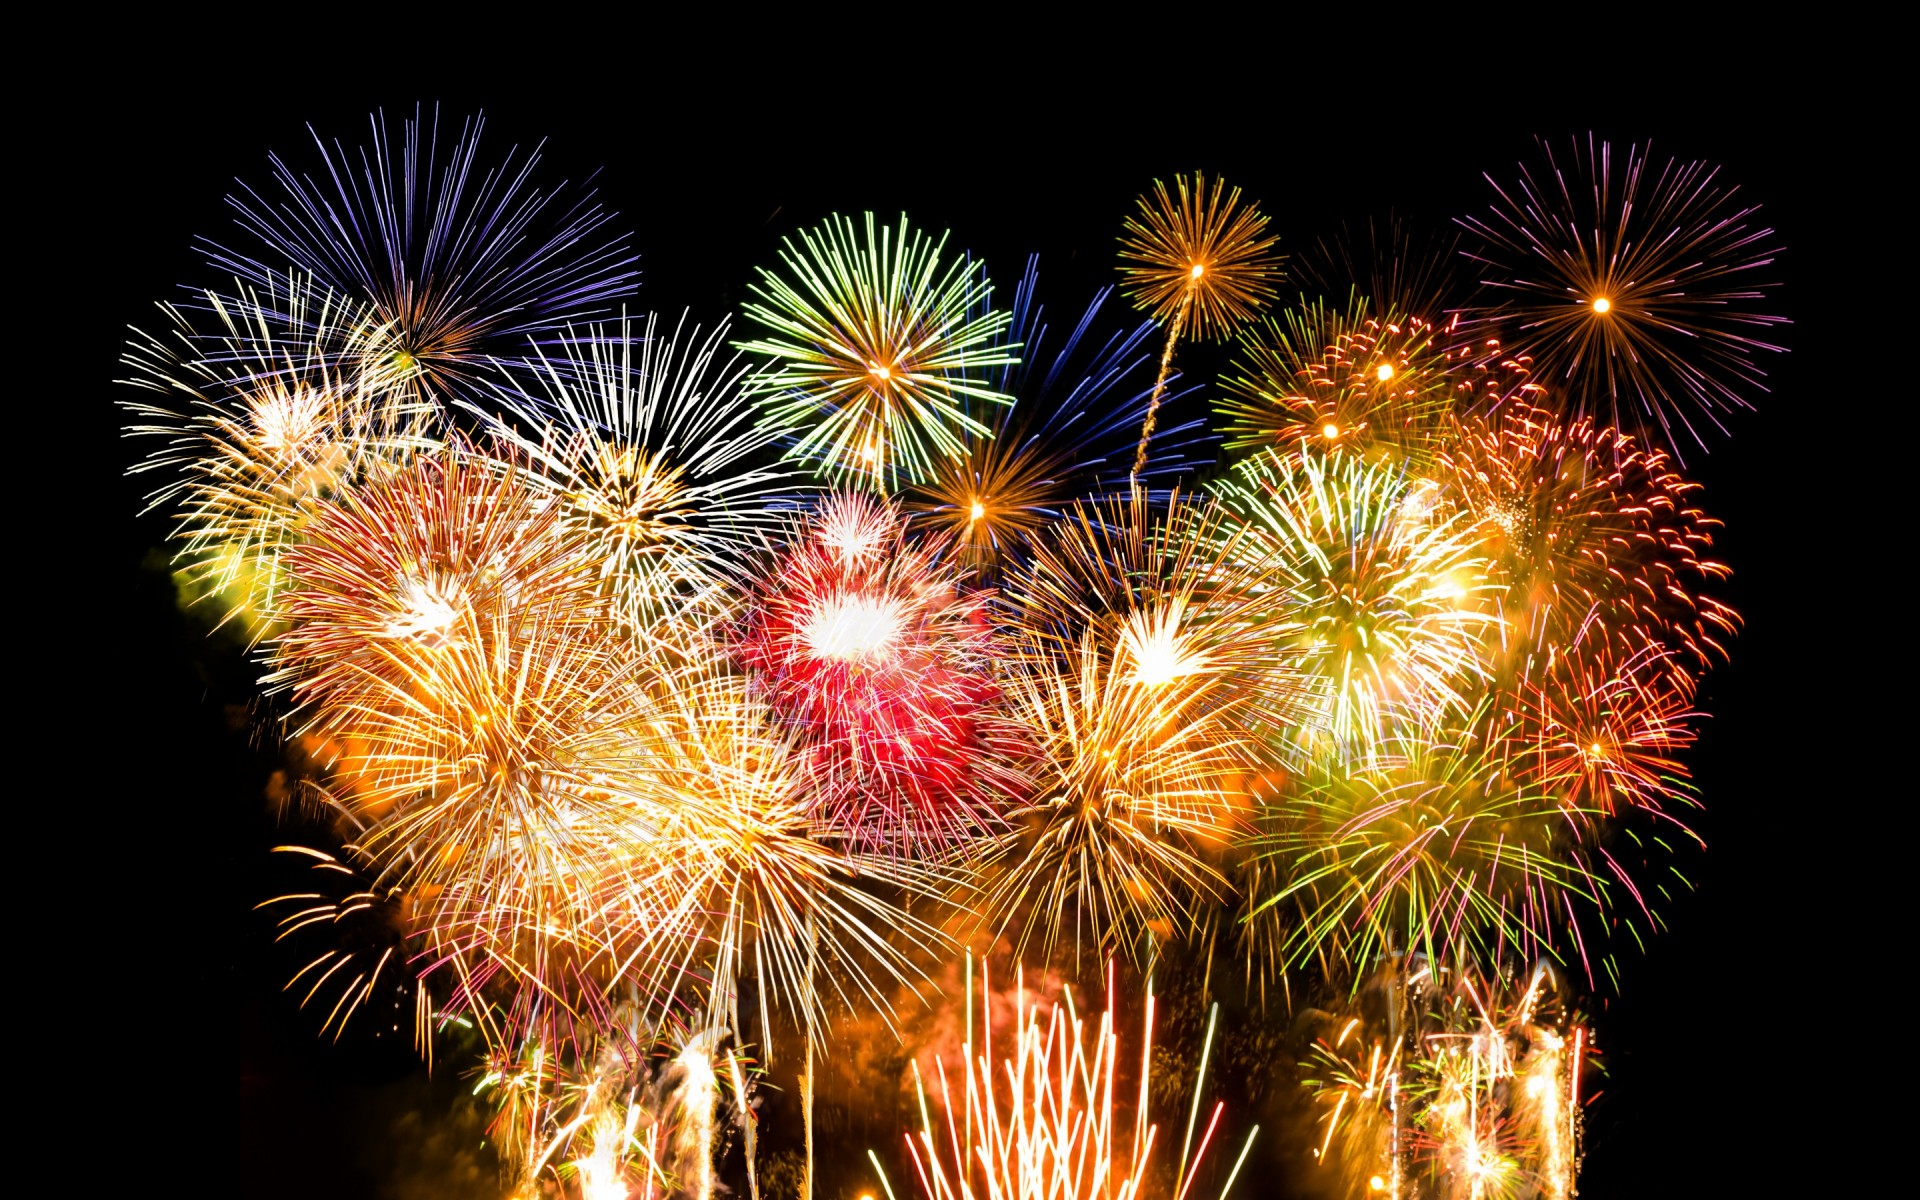 eautiful Fireworks Wallpaper 8649